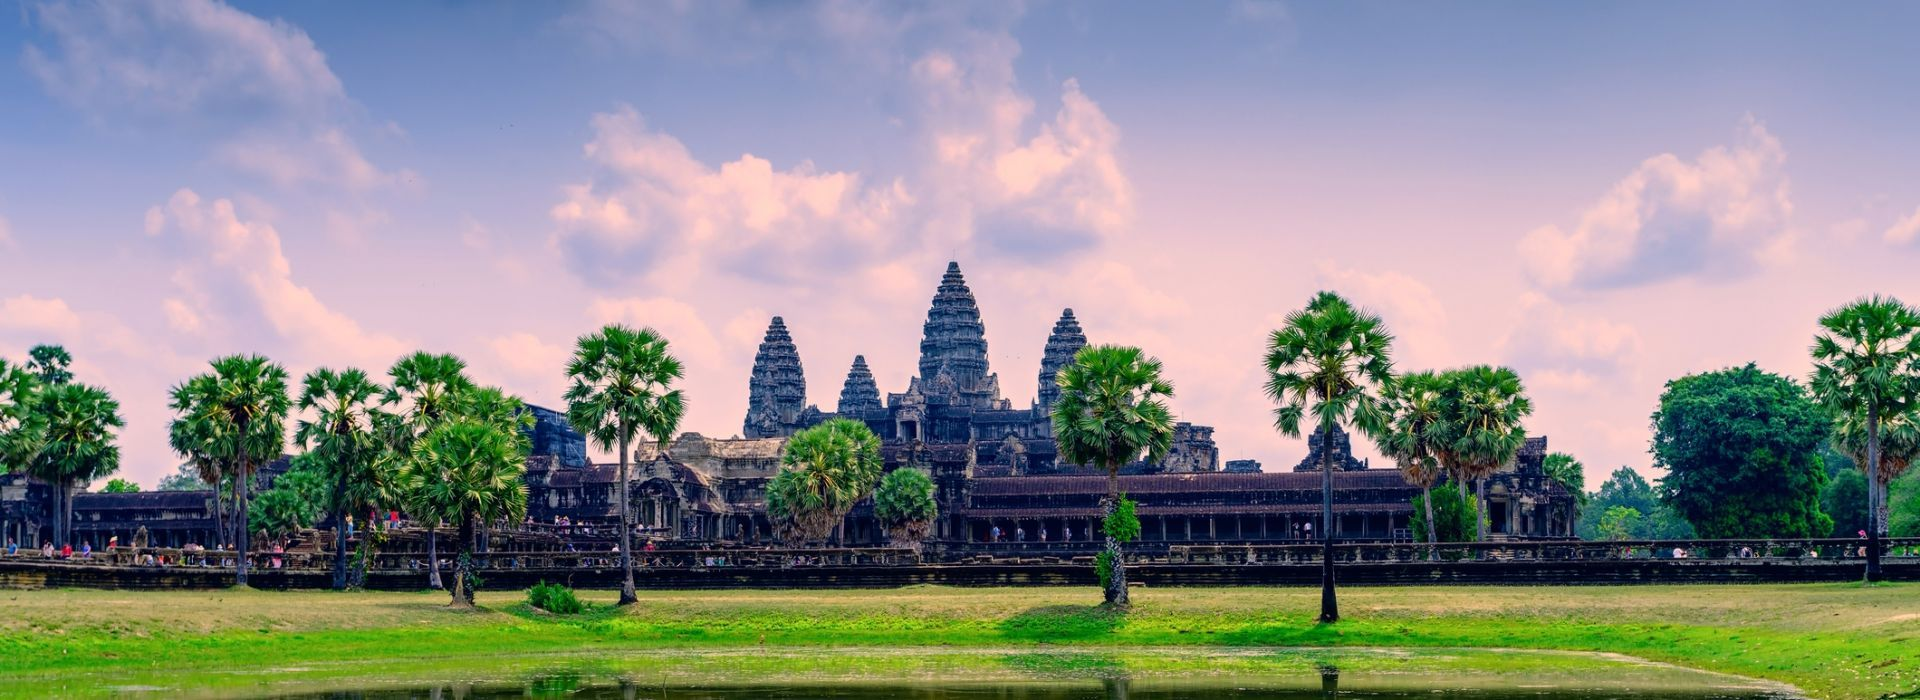 Beach, romance, getaways and relaxation Tours in Phnom Penh